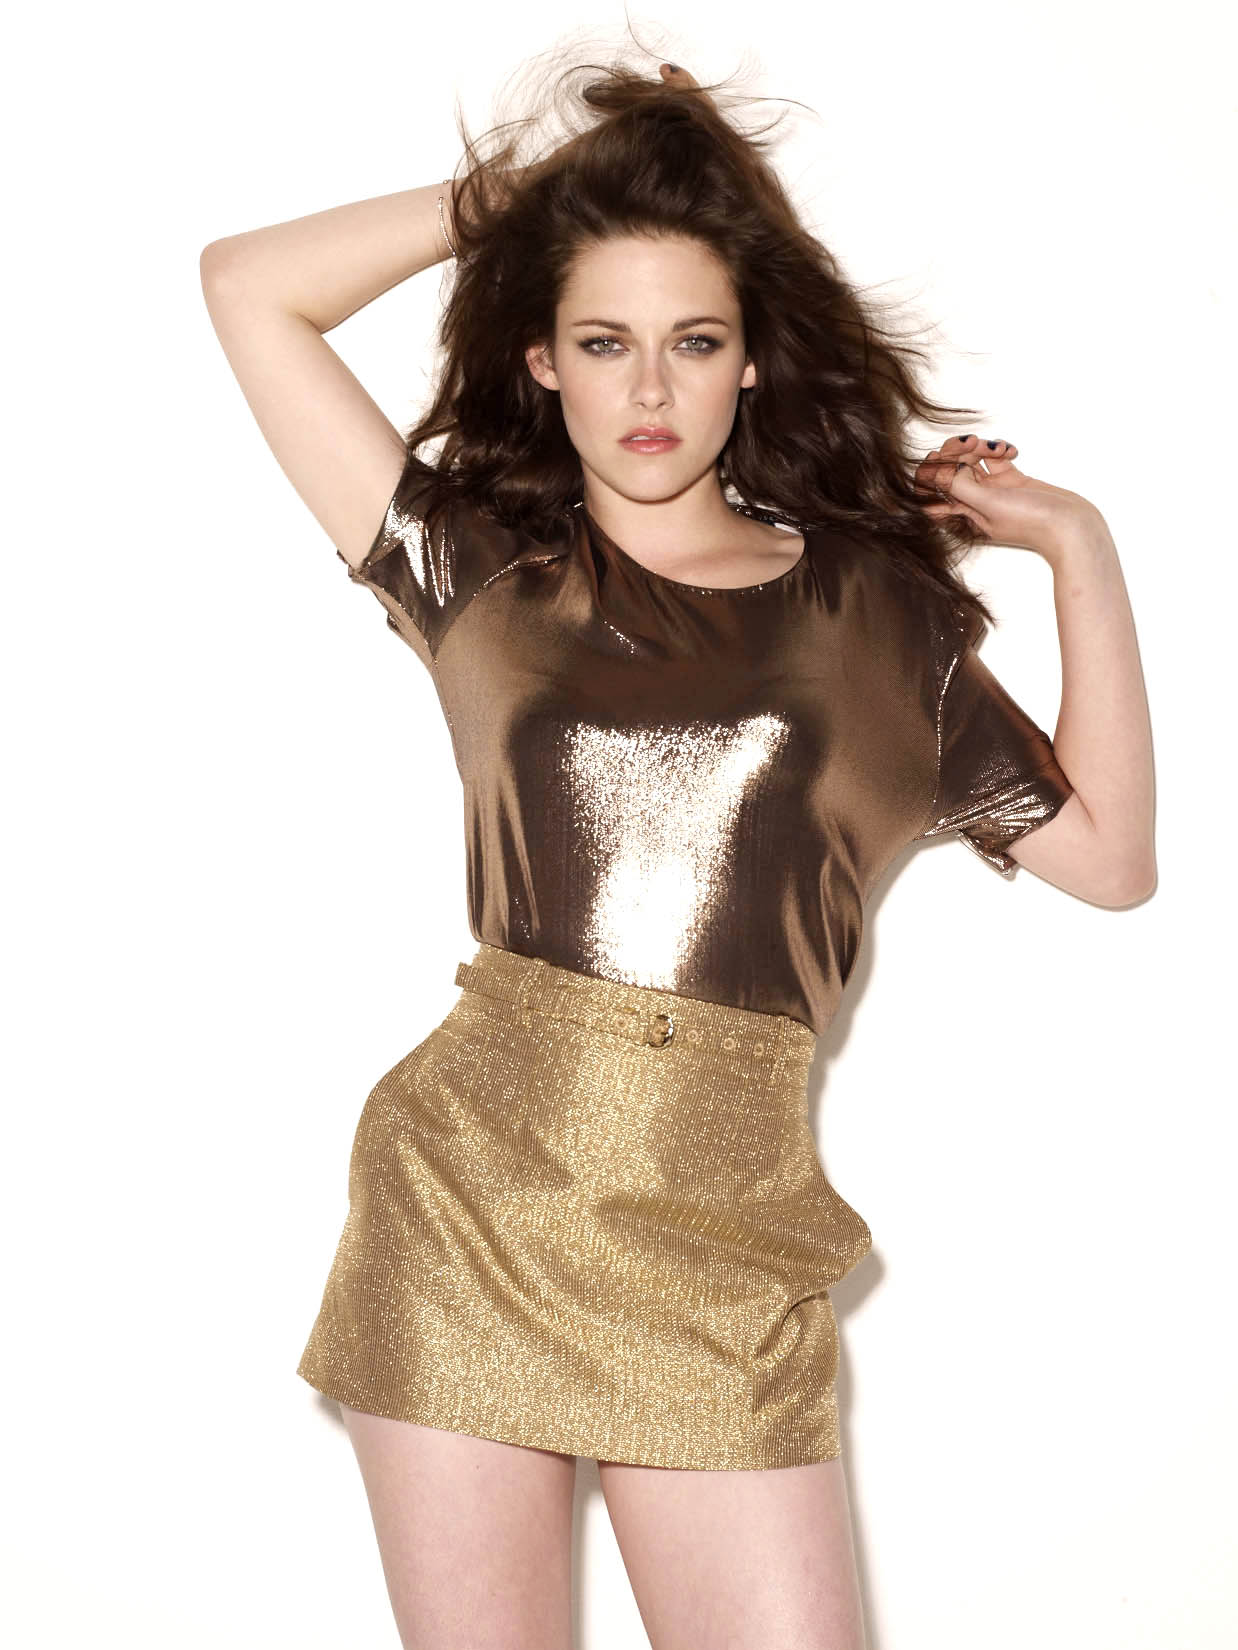 kristen-stewart-hot-and-sizzling-pics